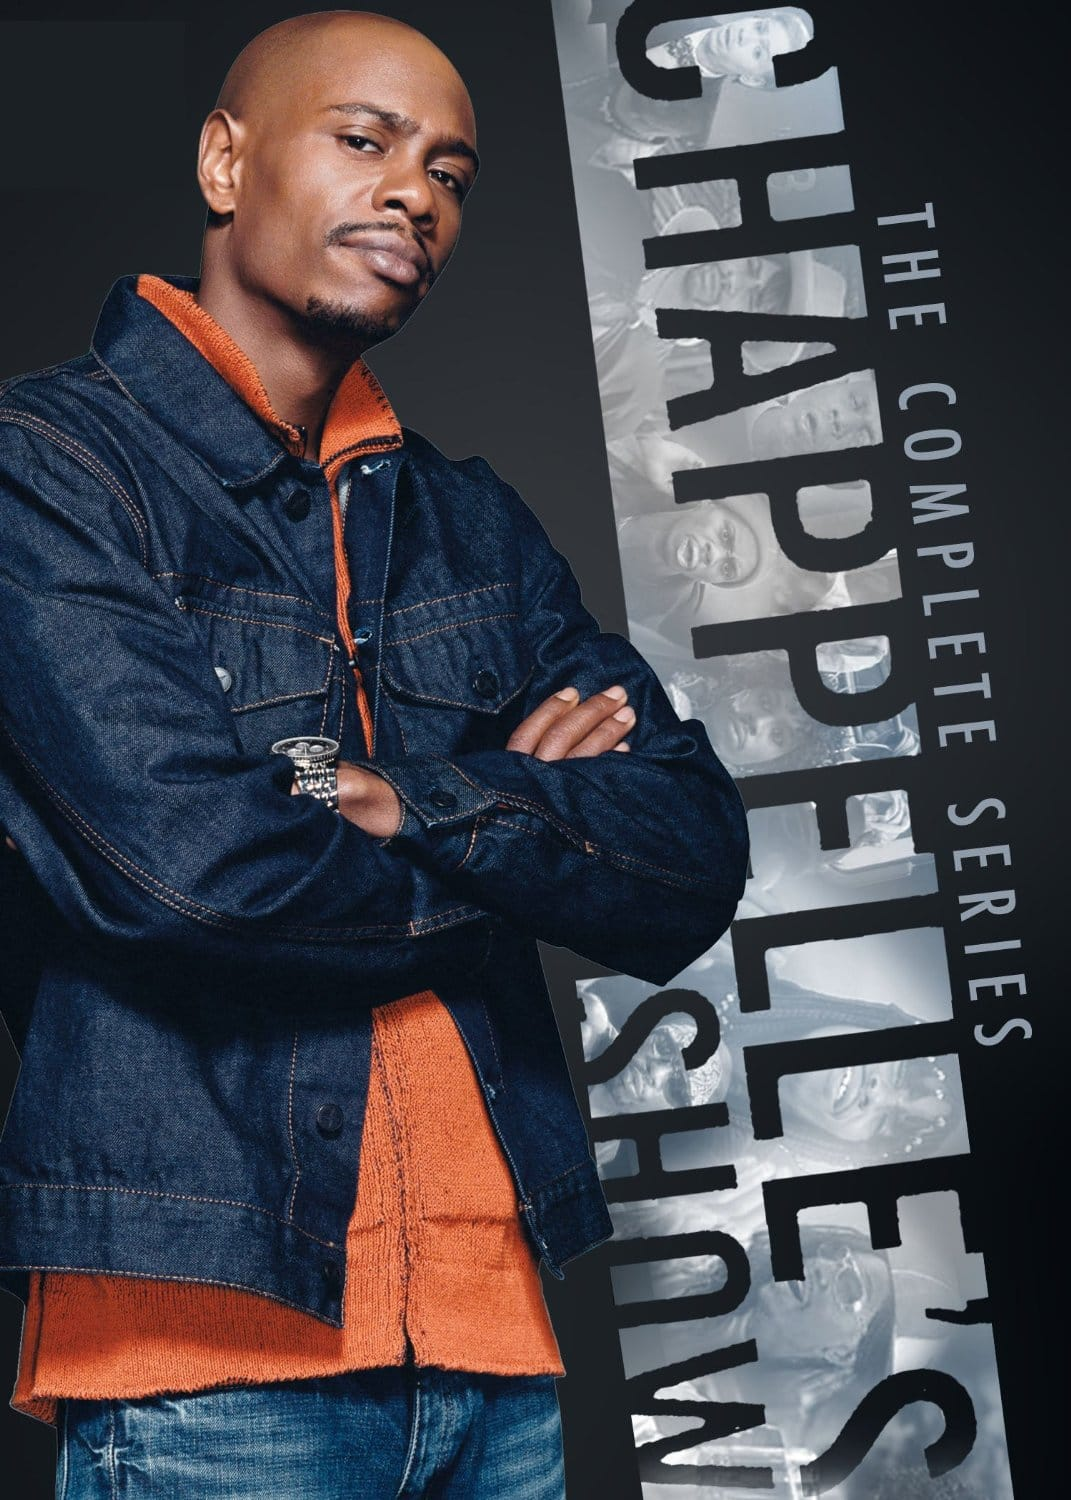 Chappelle's Show: The Complete Series (DVD)  $12.20